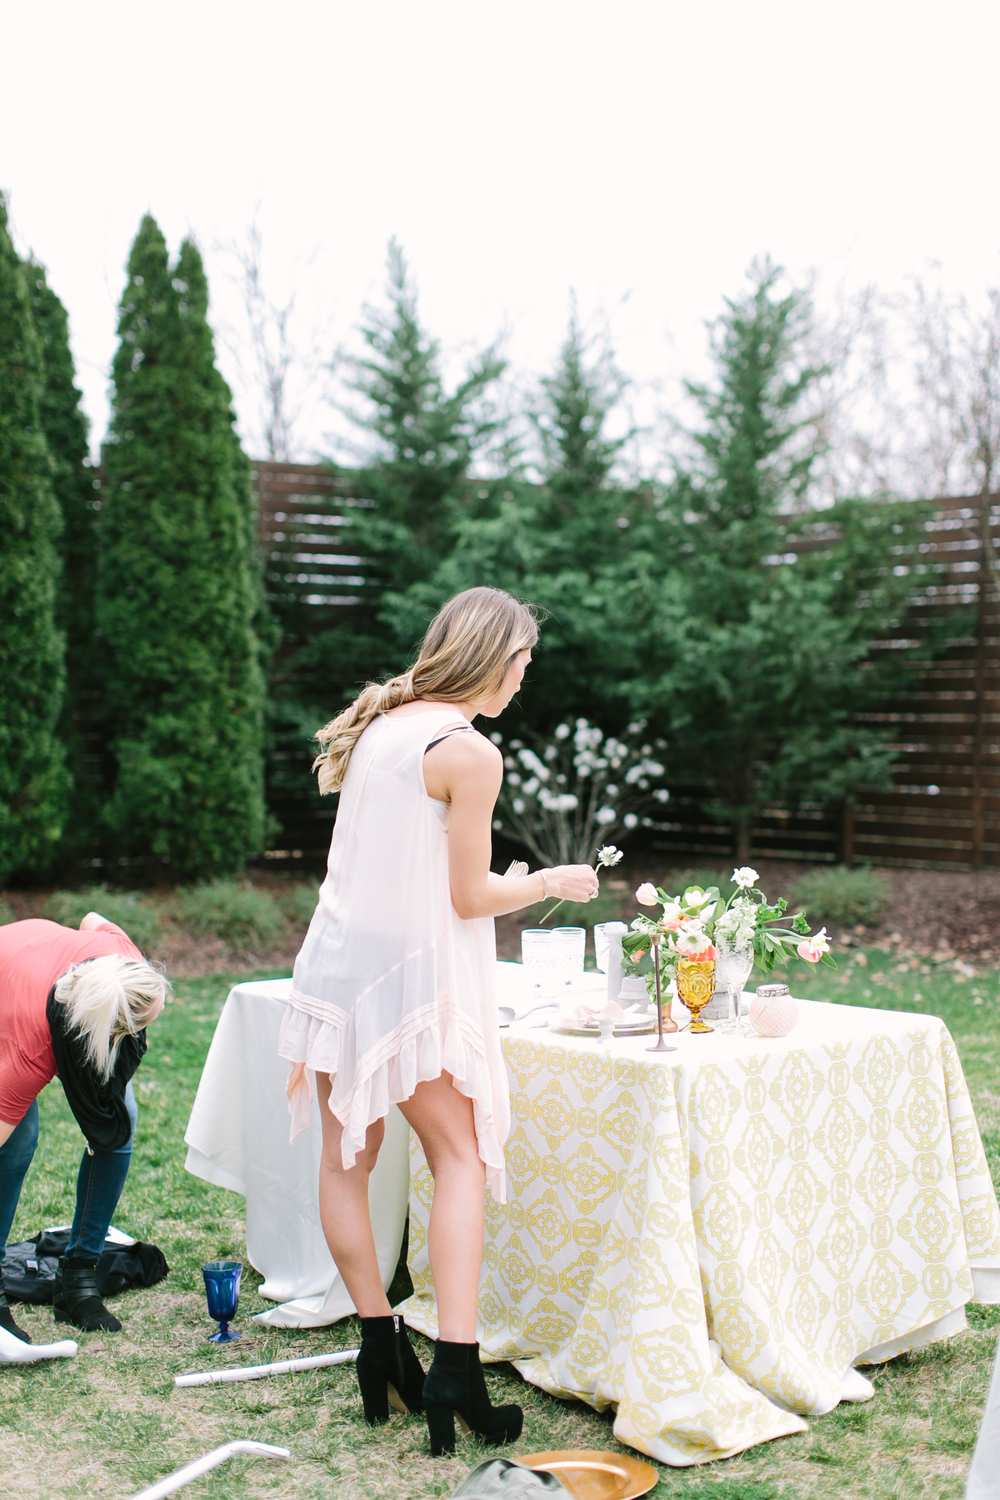 Floral design-workshop-creatives-entrepeneurs-outdoor workshop-nashville-styling inspiration-